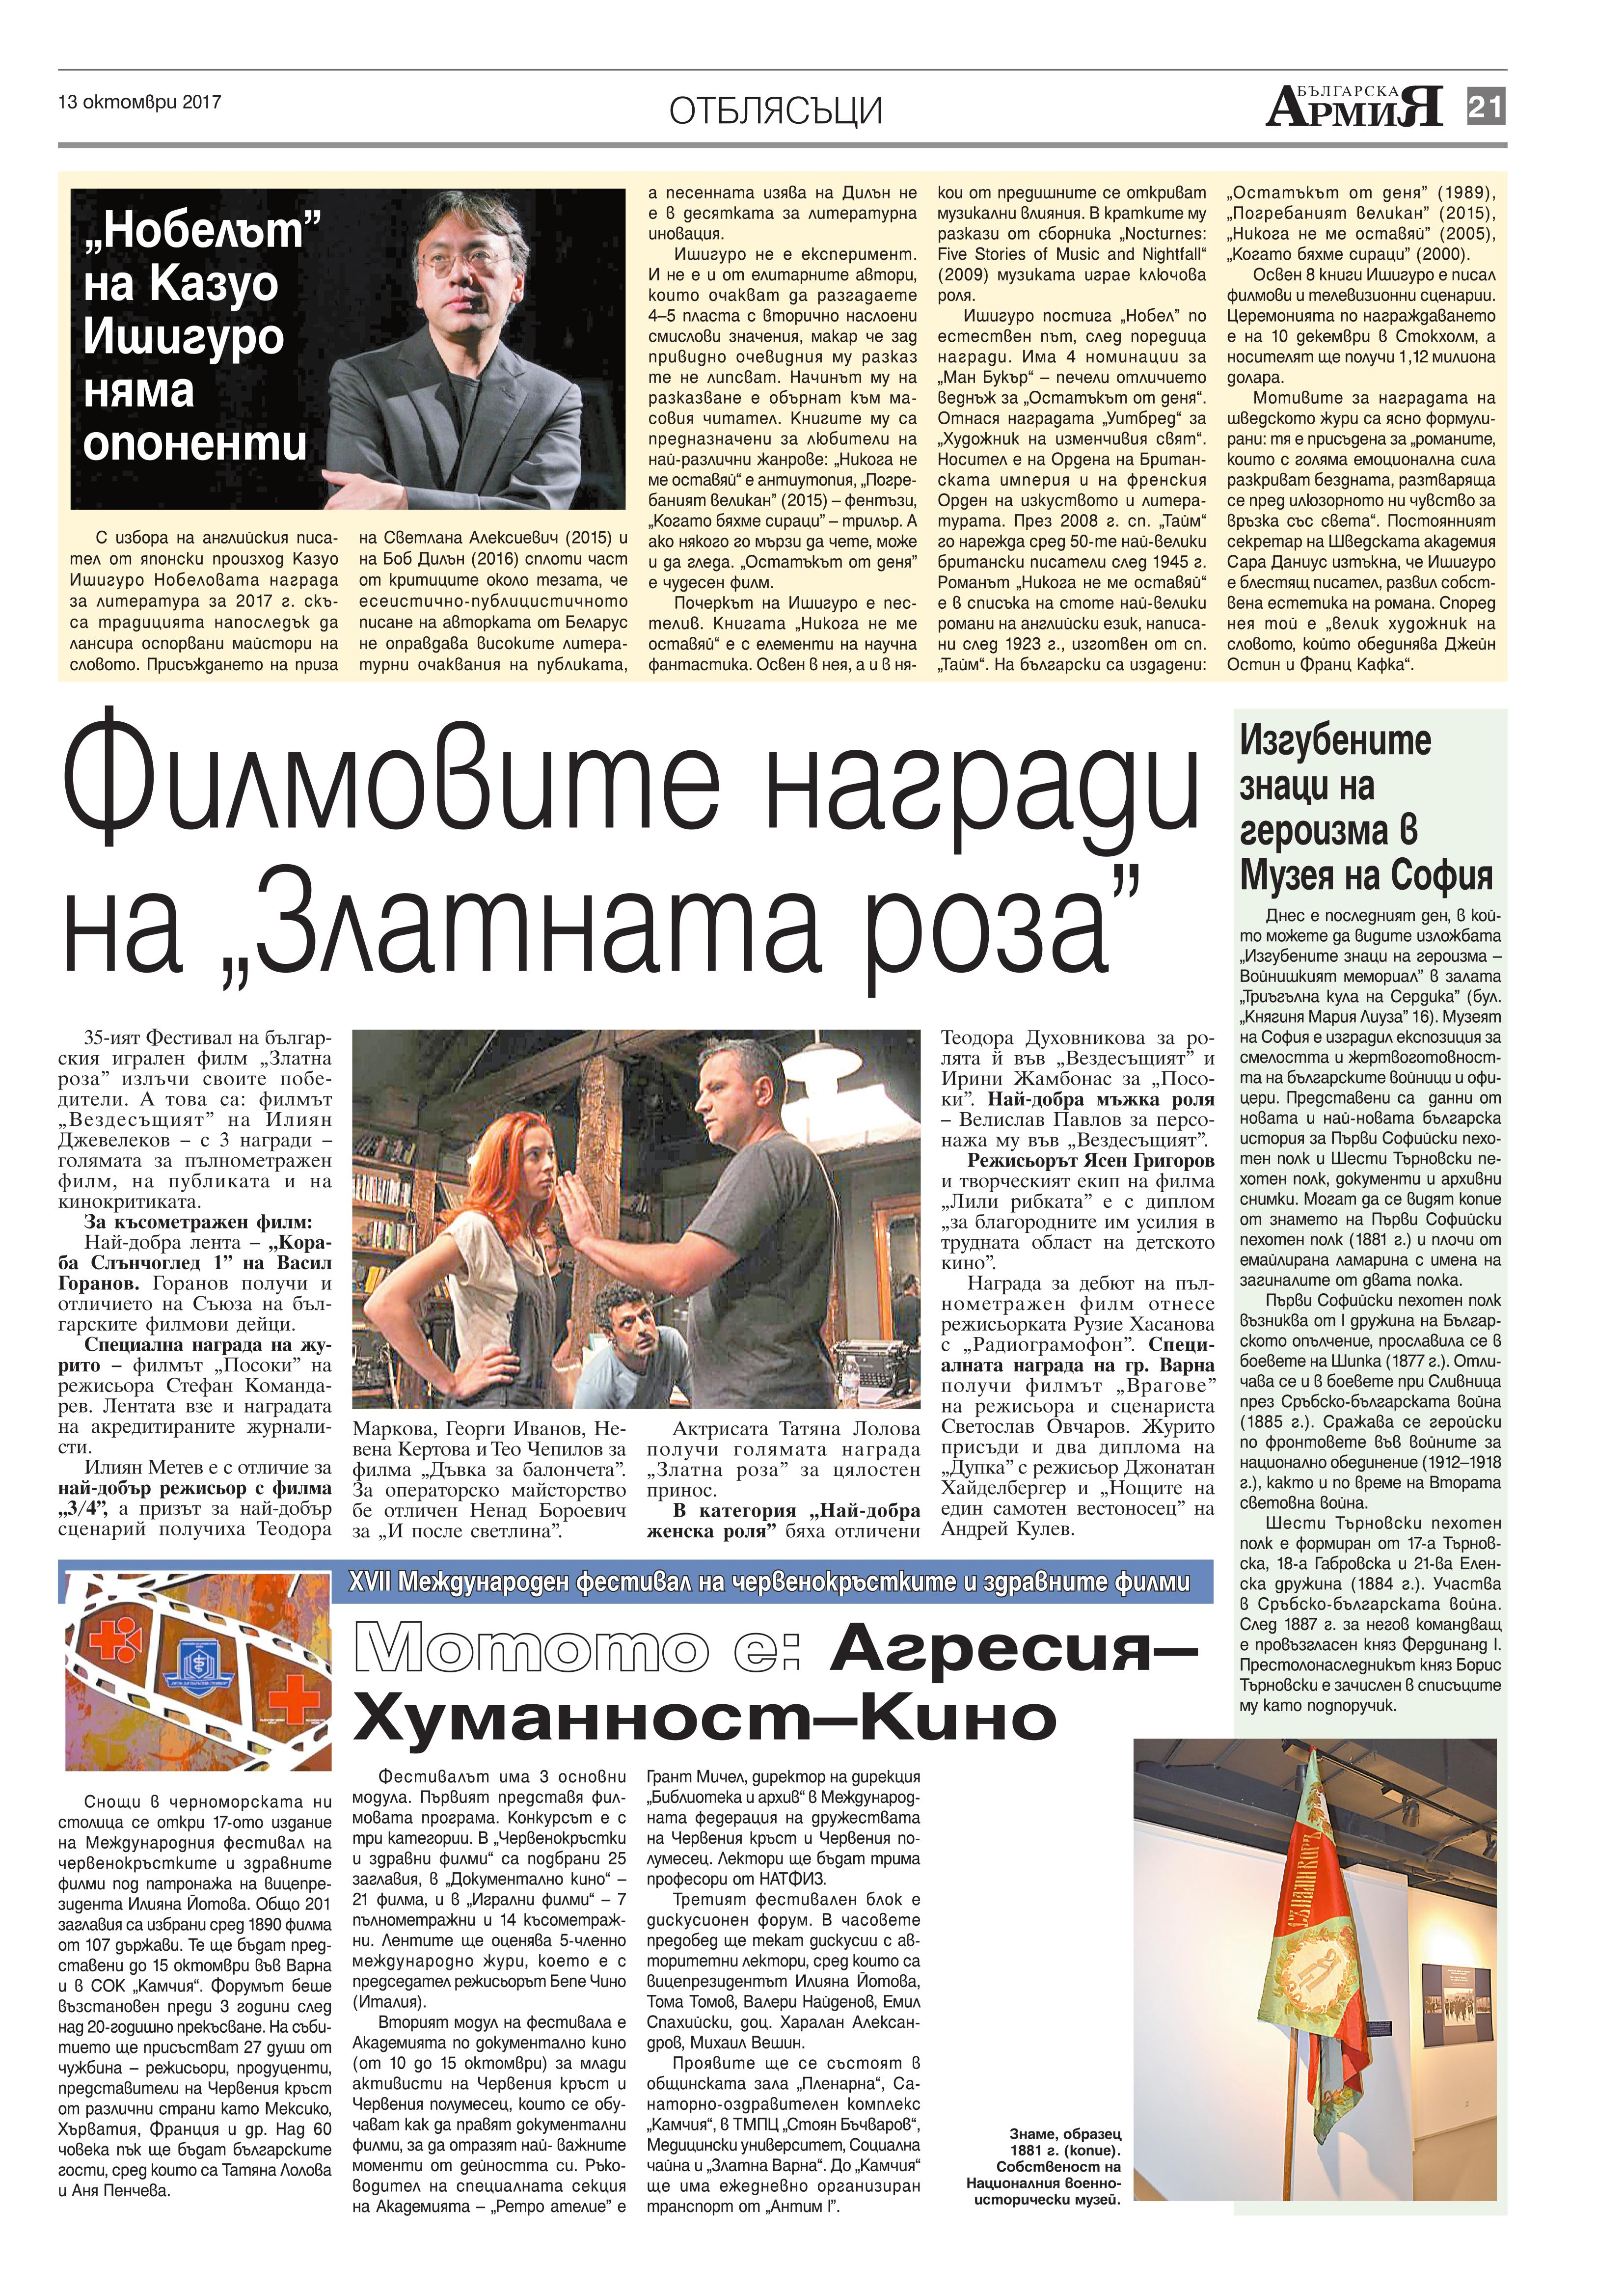 http://armymedia.bg/wp-content/uploads/2015/06/21.page1_-34.jpg